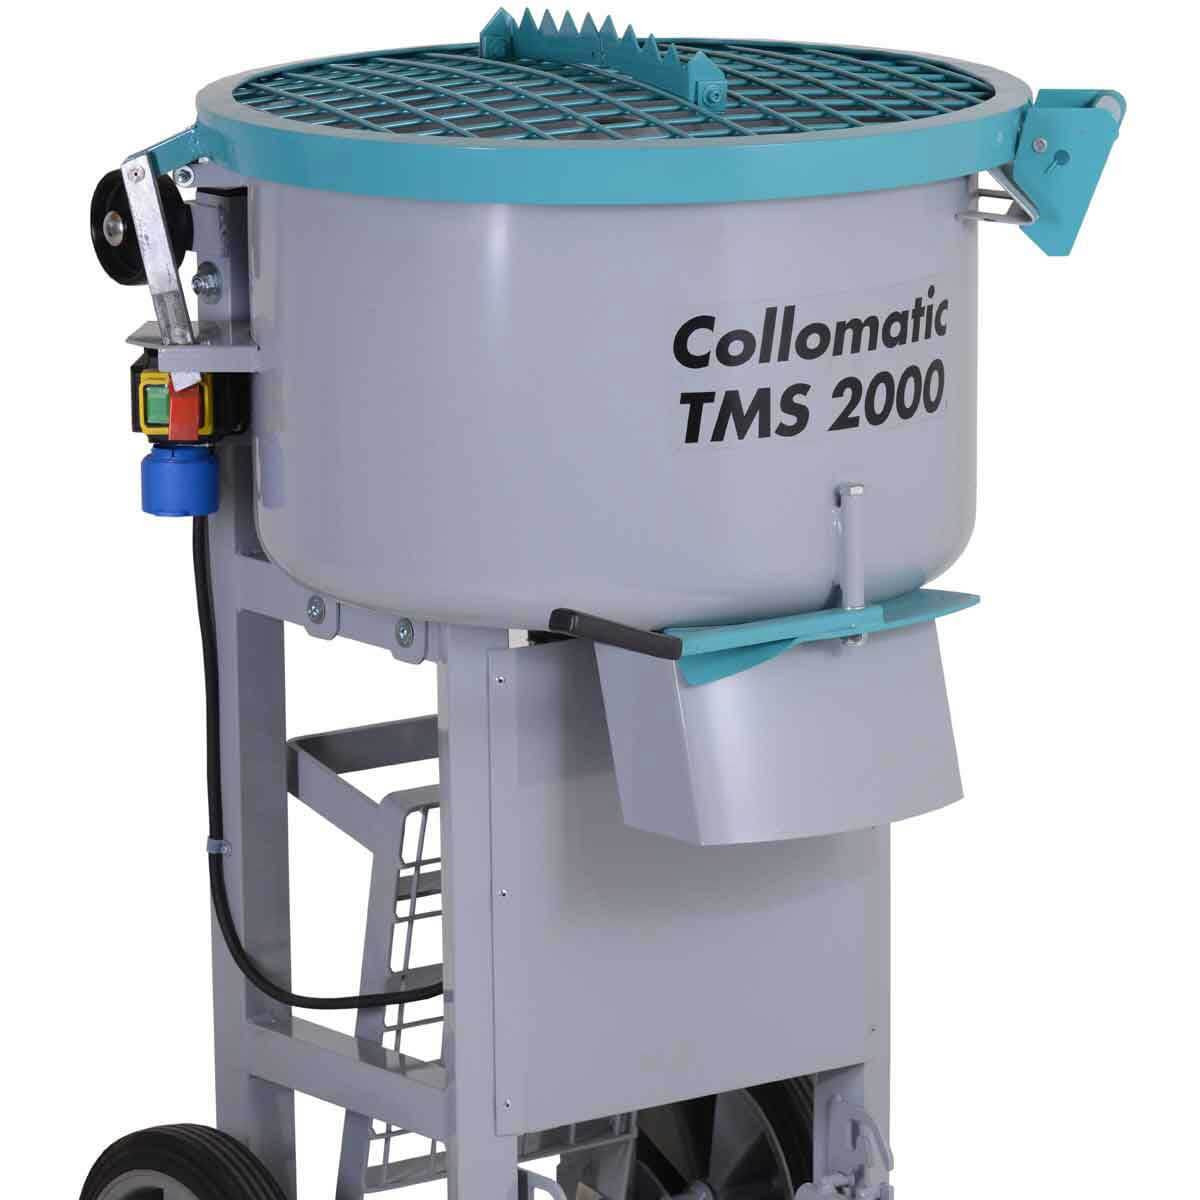 Collomix TMS 2000 Mortar Mixer drum